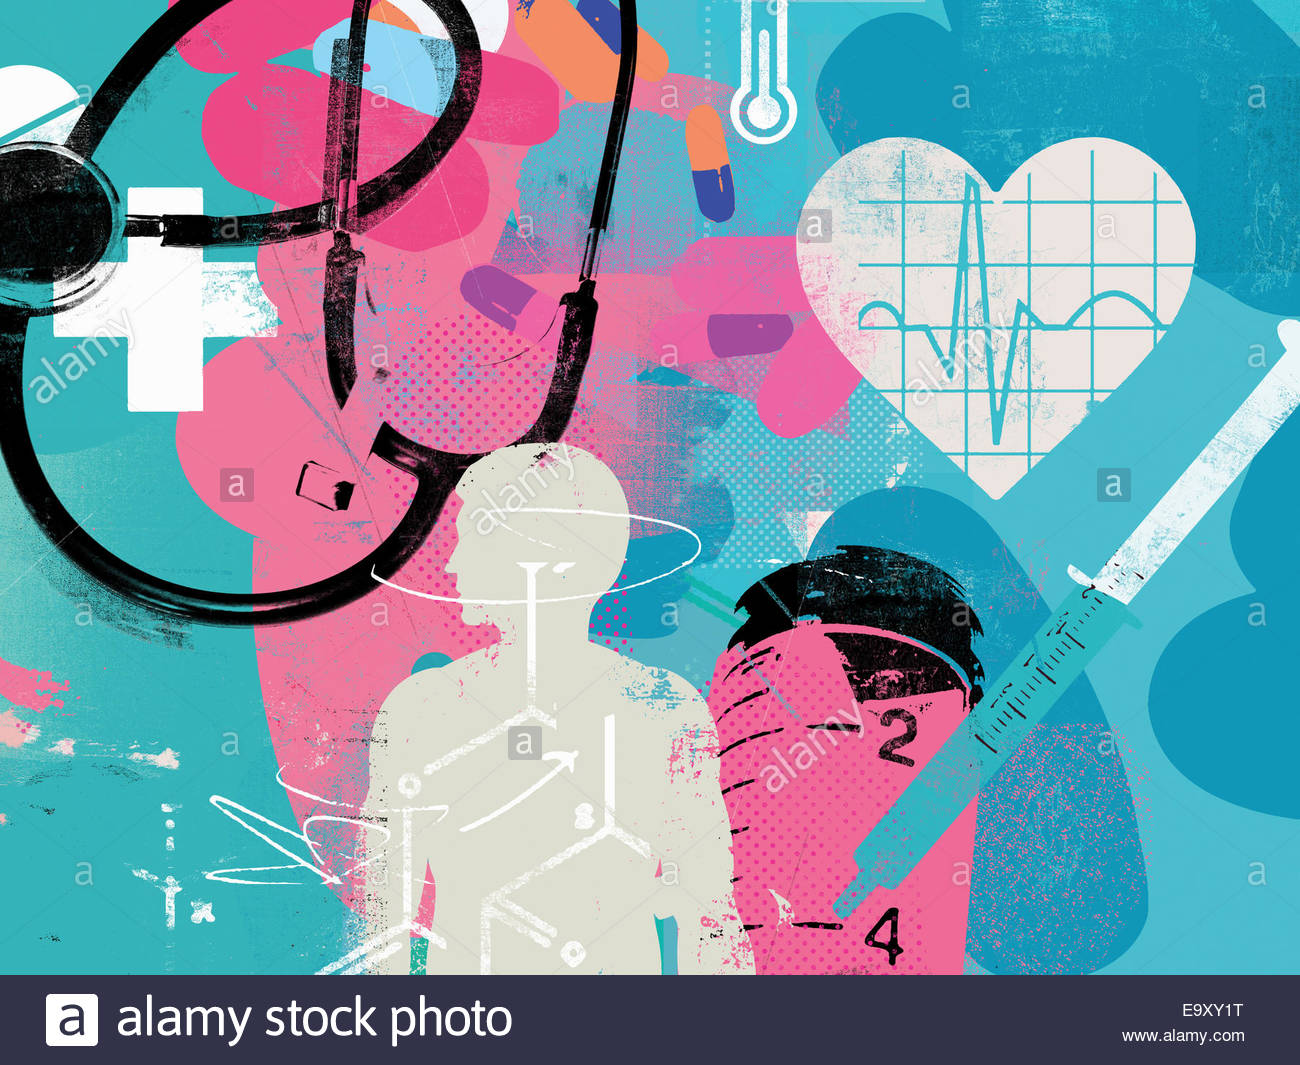 Healthcare and medicine collage - Stock Image